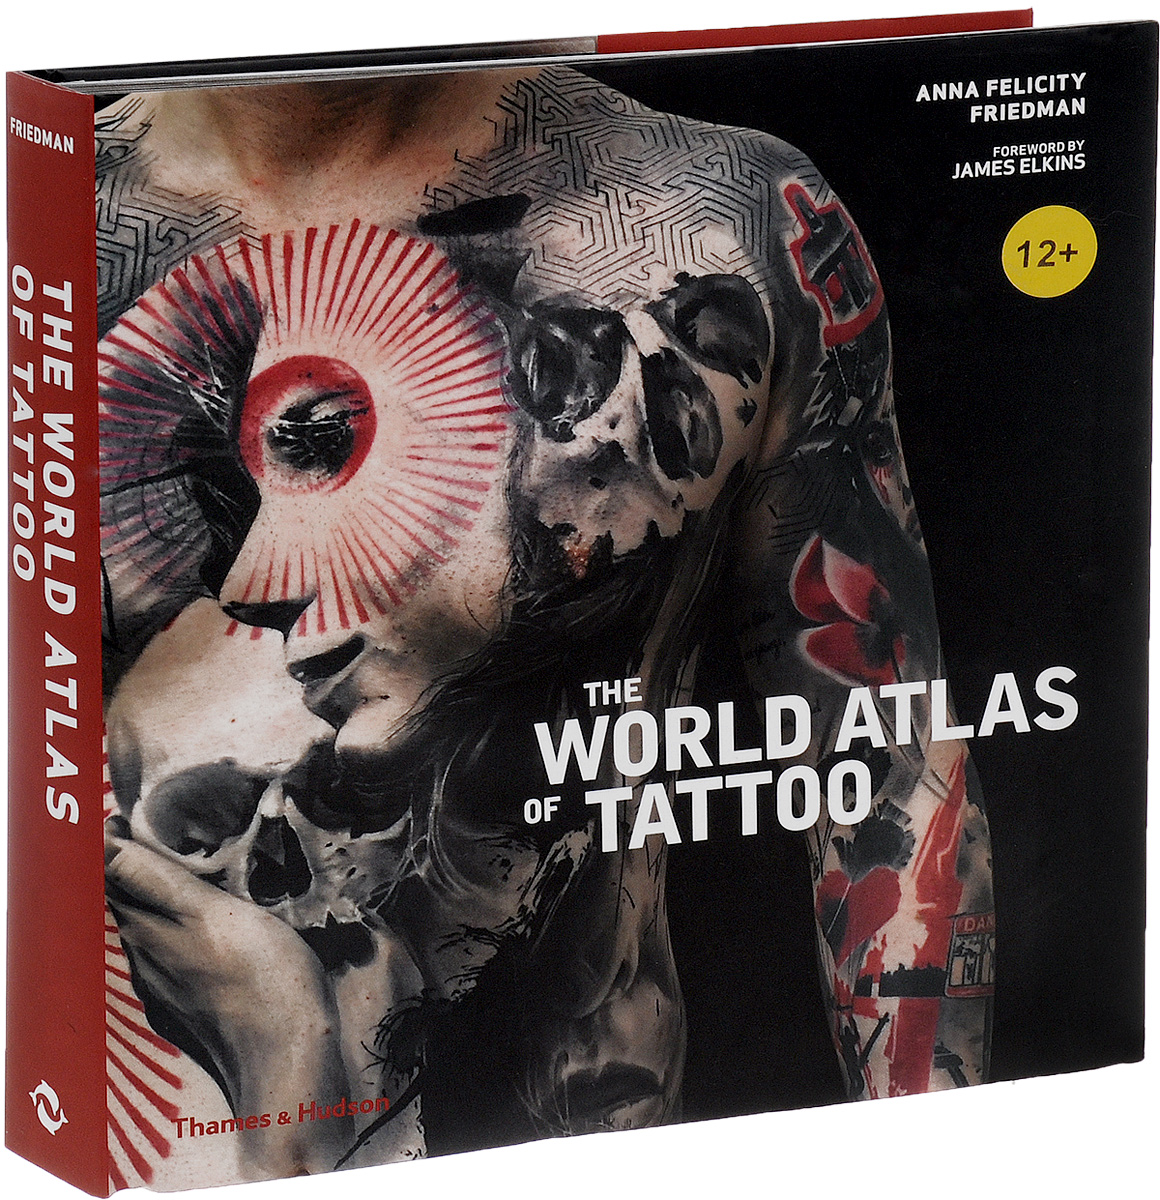 The World Atlas of Tattoo 1pcs serial ata sata 4 pin ide to 2 of 15 hdd power adapter cable hot worldwide